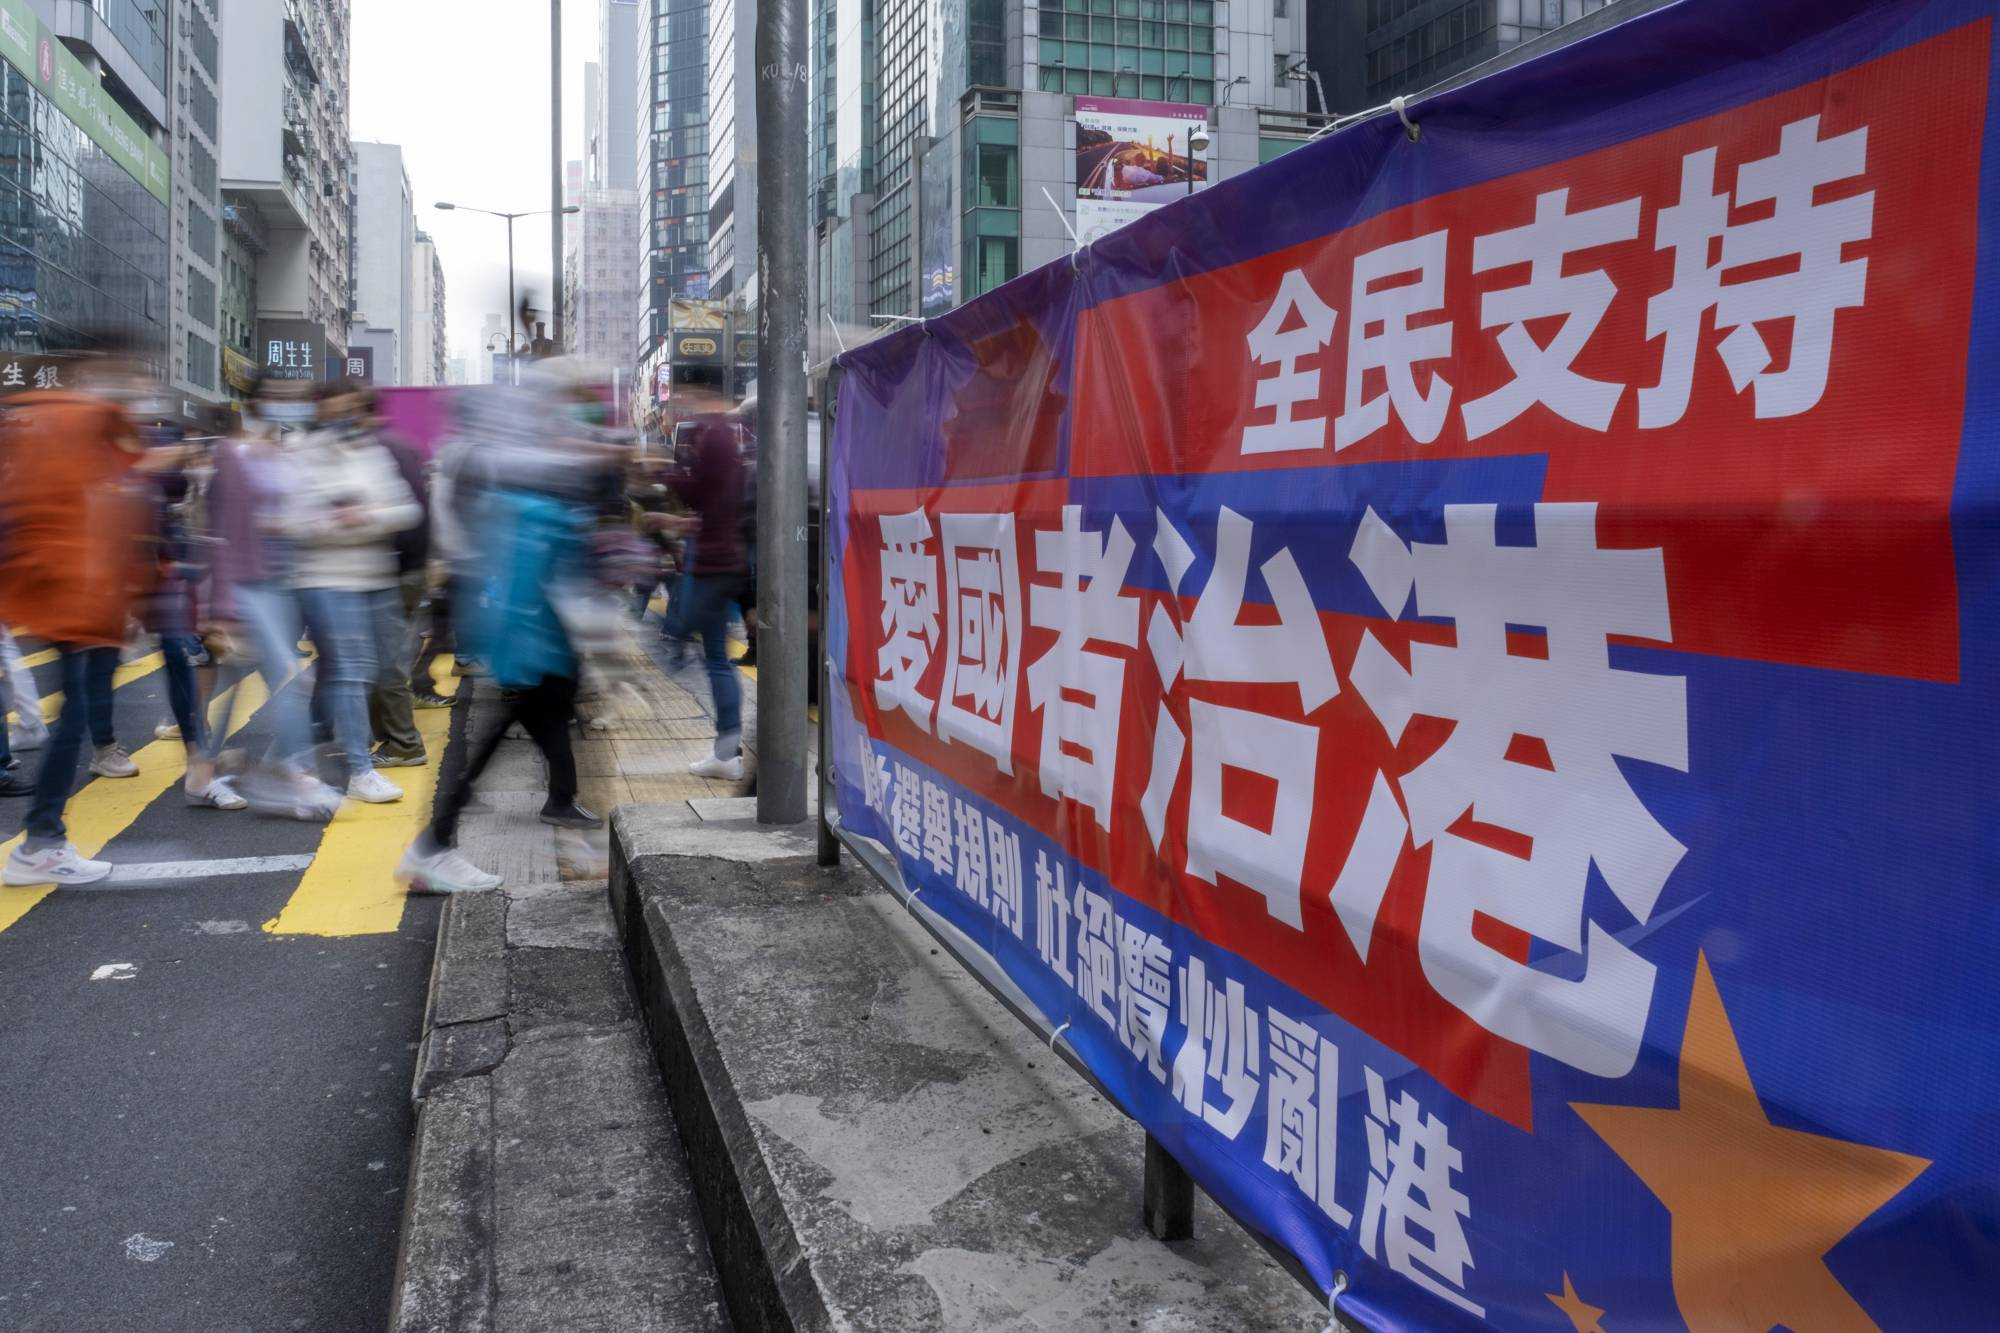 The National People's Congress in Beijing on Friday laid out plans to make changes to Hong Kong's electoral system in the coming days, following through on Chinese President Xi Jinping's call to ensure 'patriots' run the global financial center. | BLOOMBERG